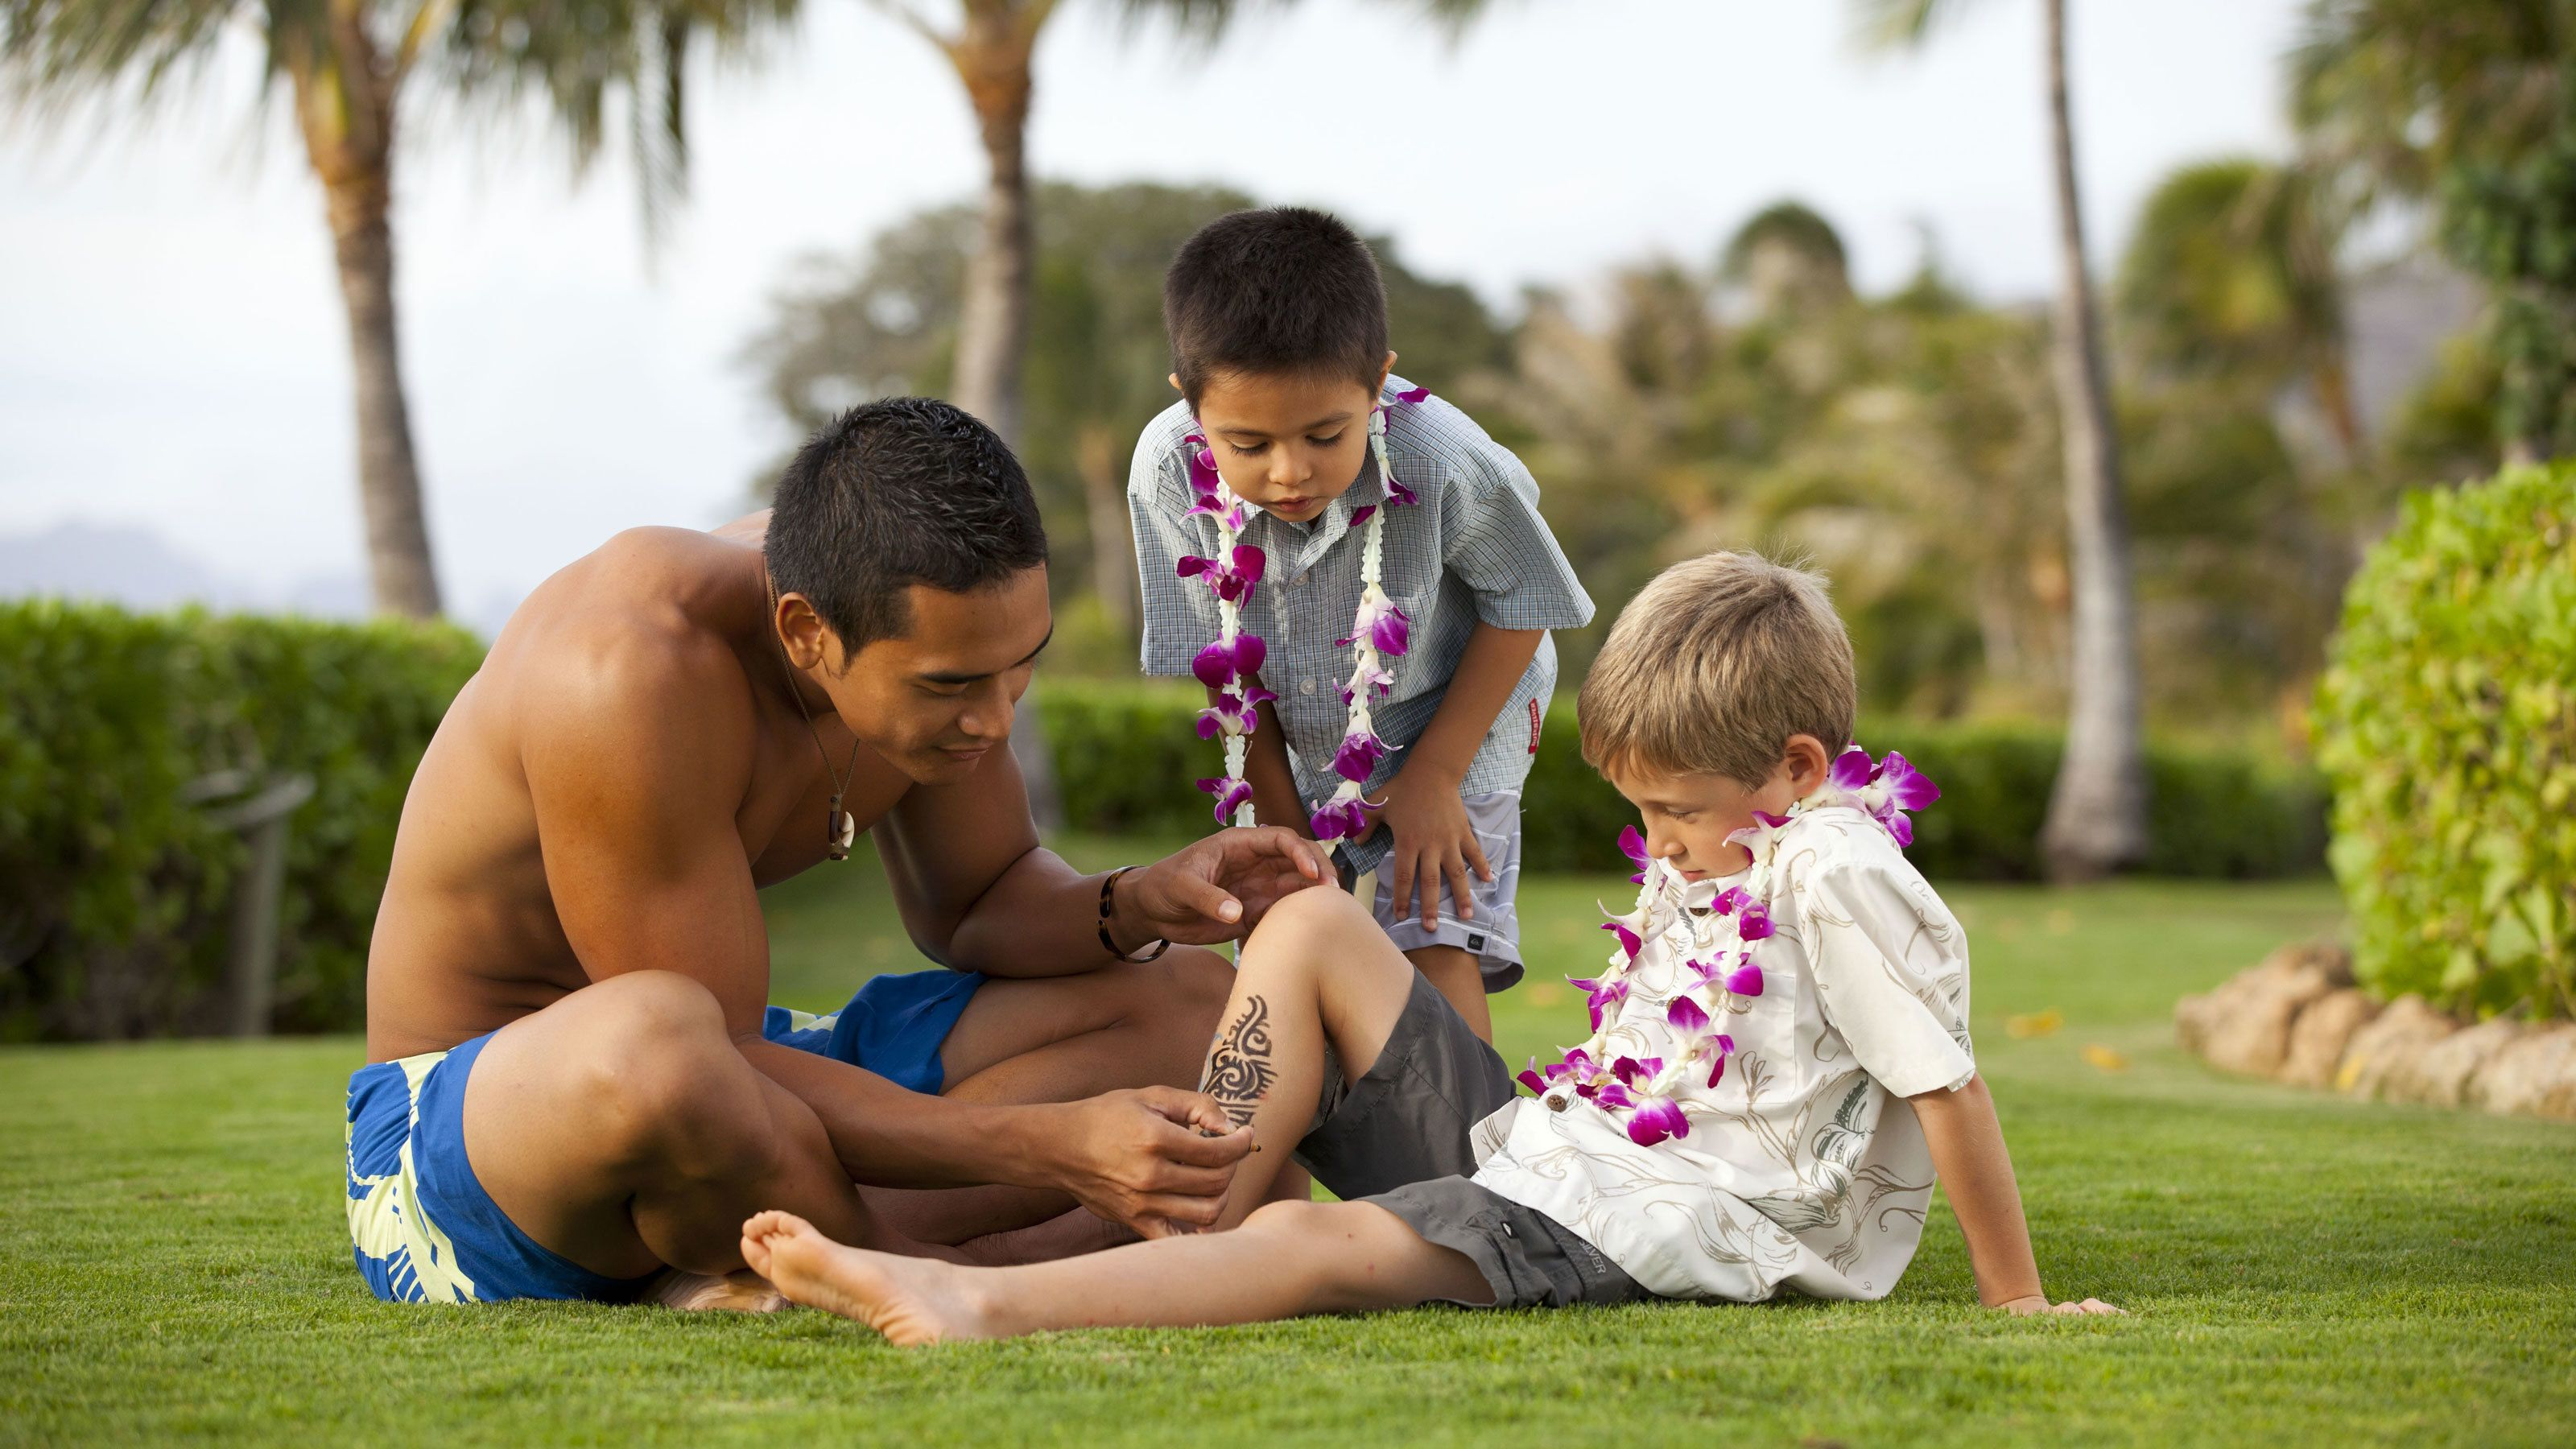 Man painting tribal art on young boy in Oahu